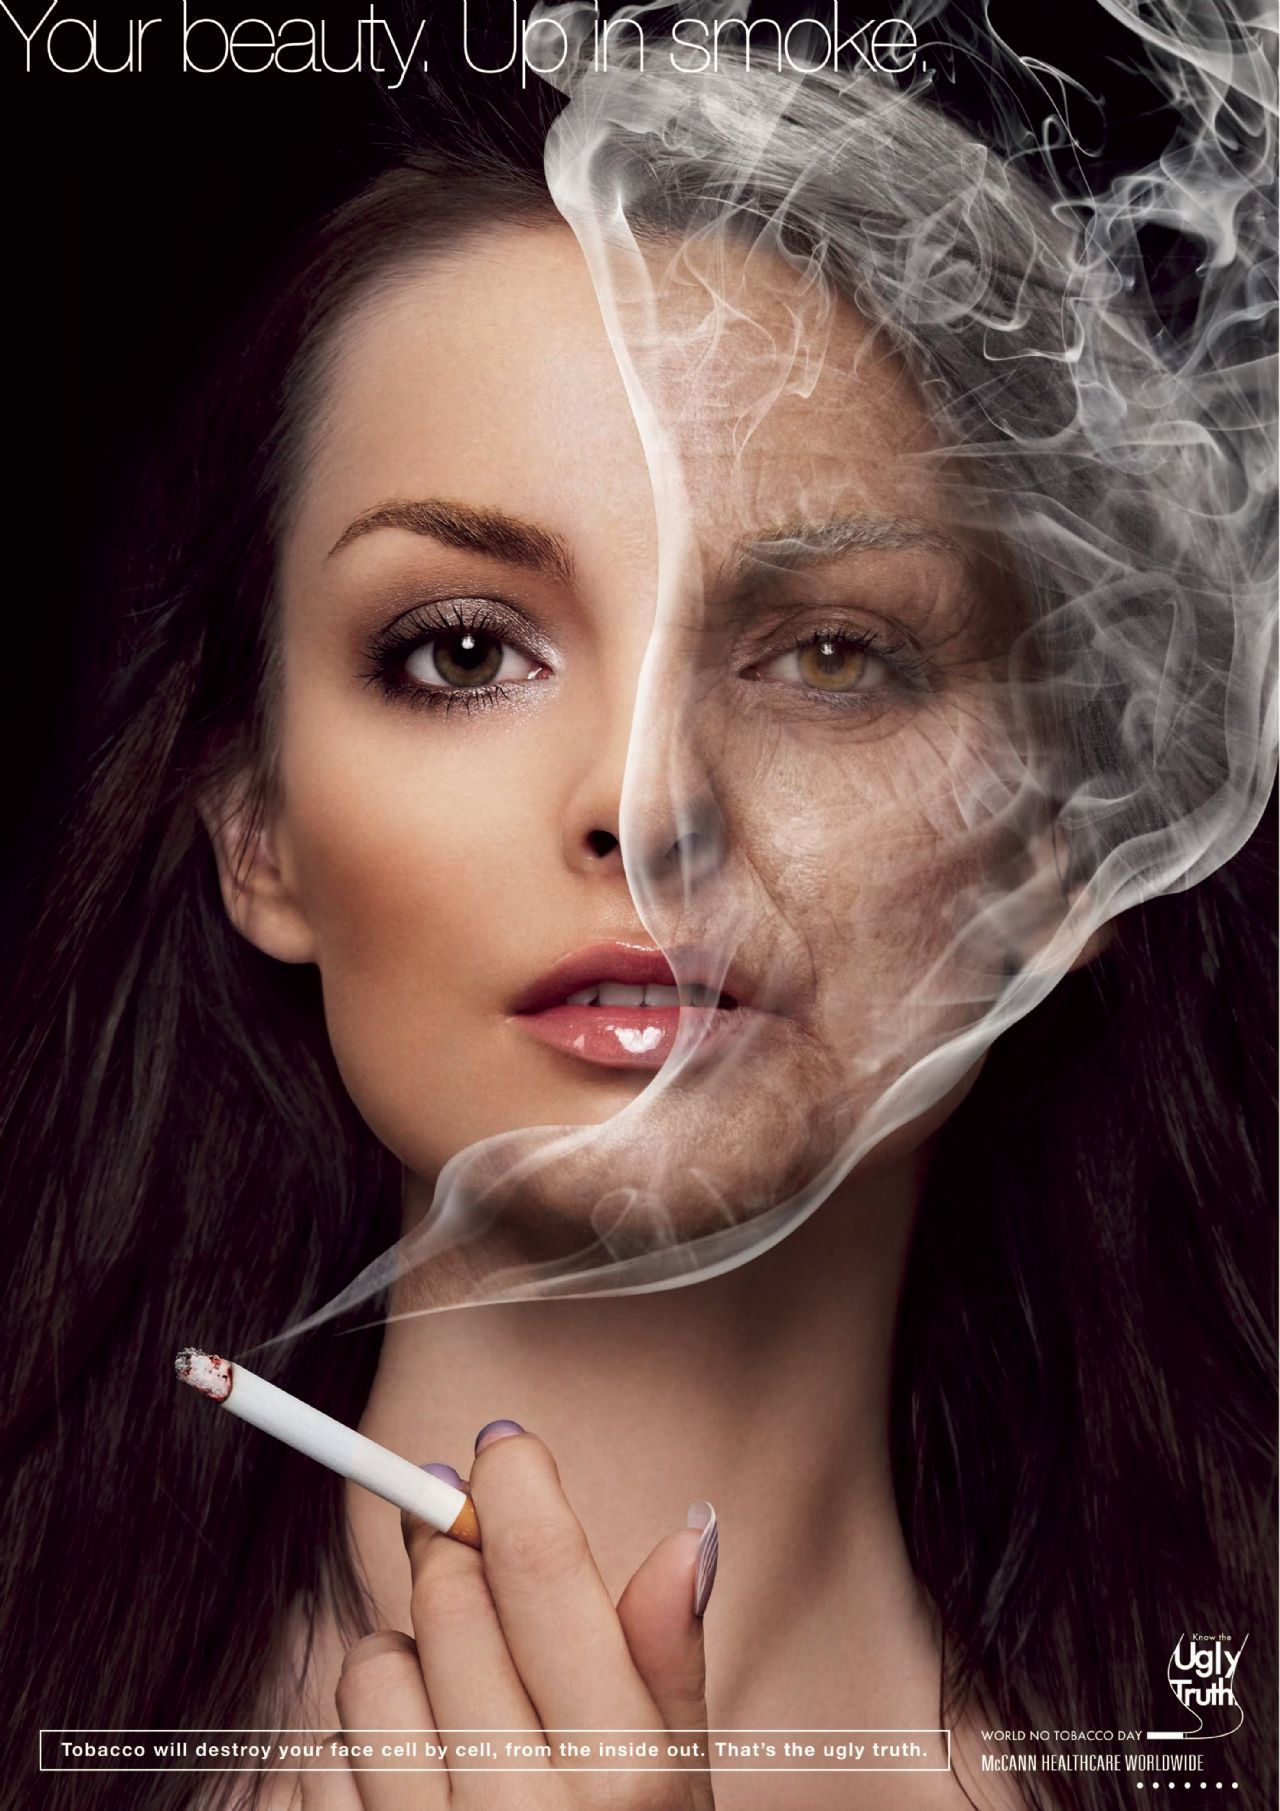 Clever use of the smoke effect, clear and direct design #advertisement